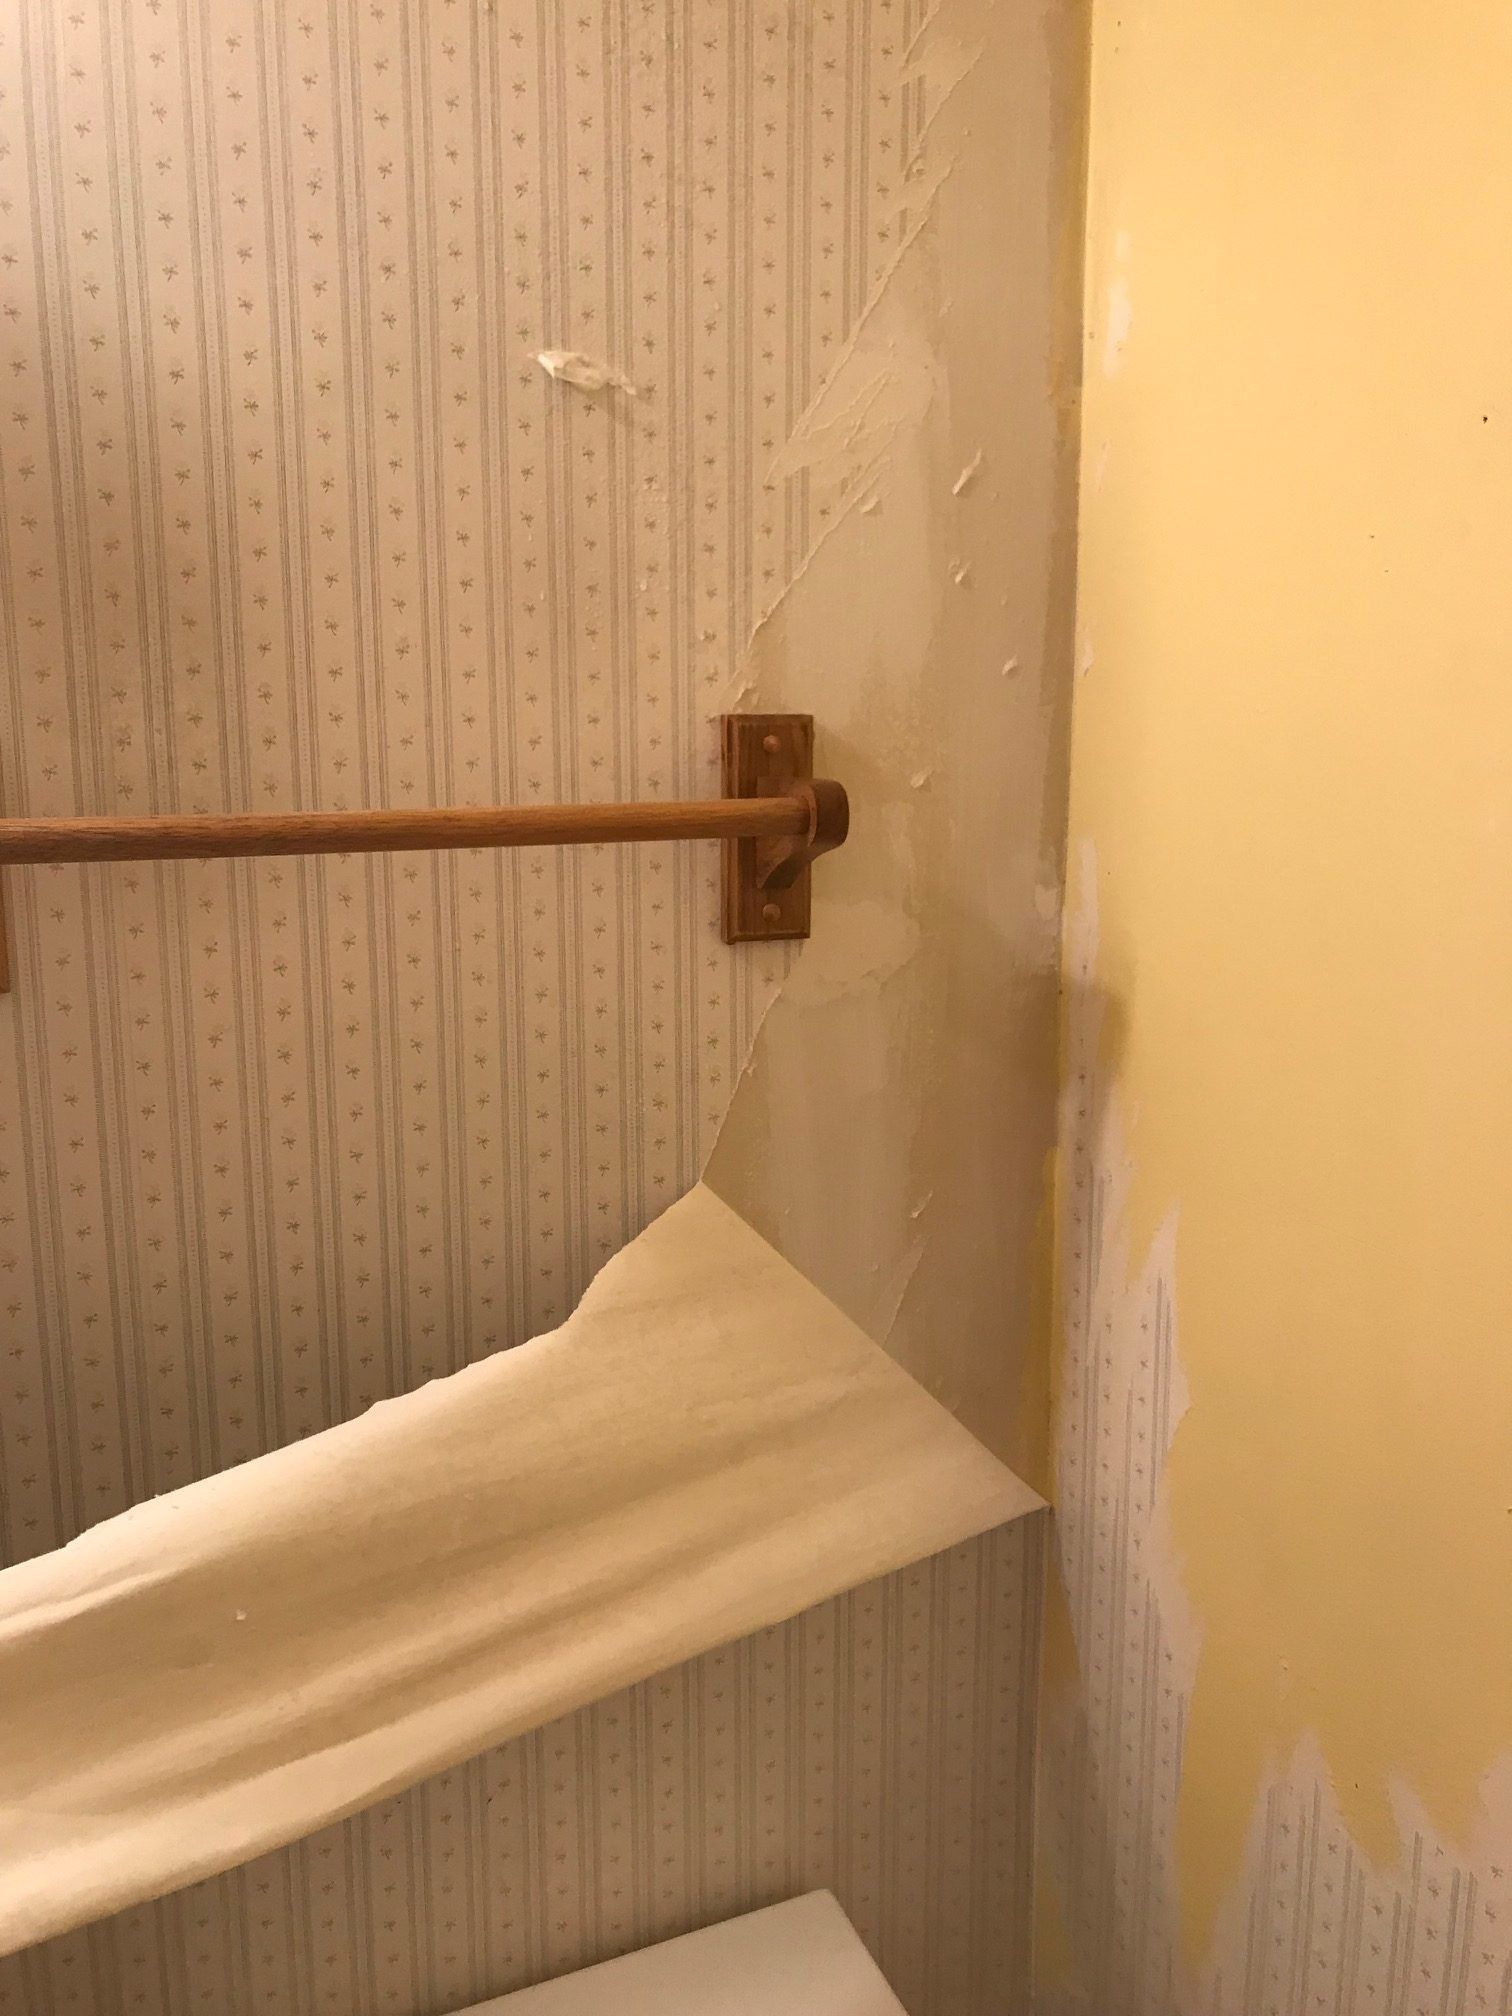 How To Remove Wallpaper From Drywall Removable Wallpaper Painting Over Wallpaper Painting Walls Tips